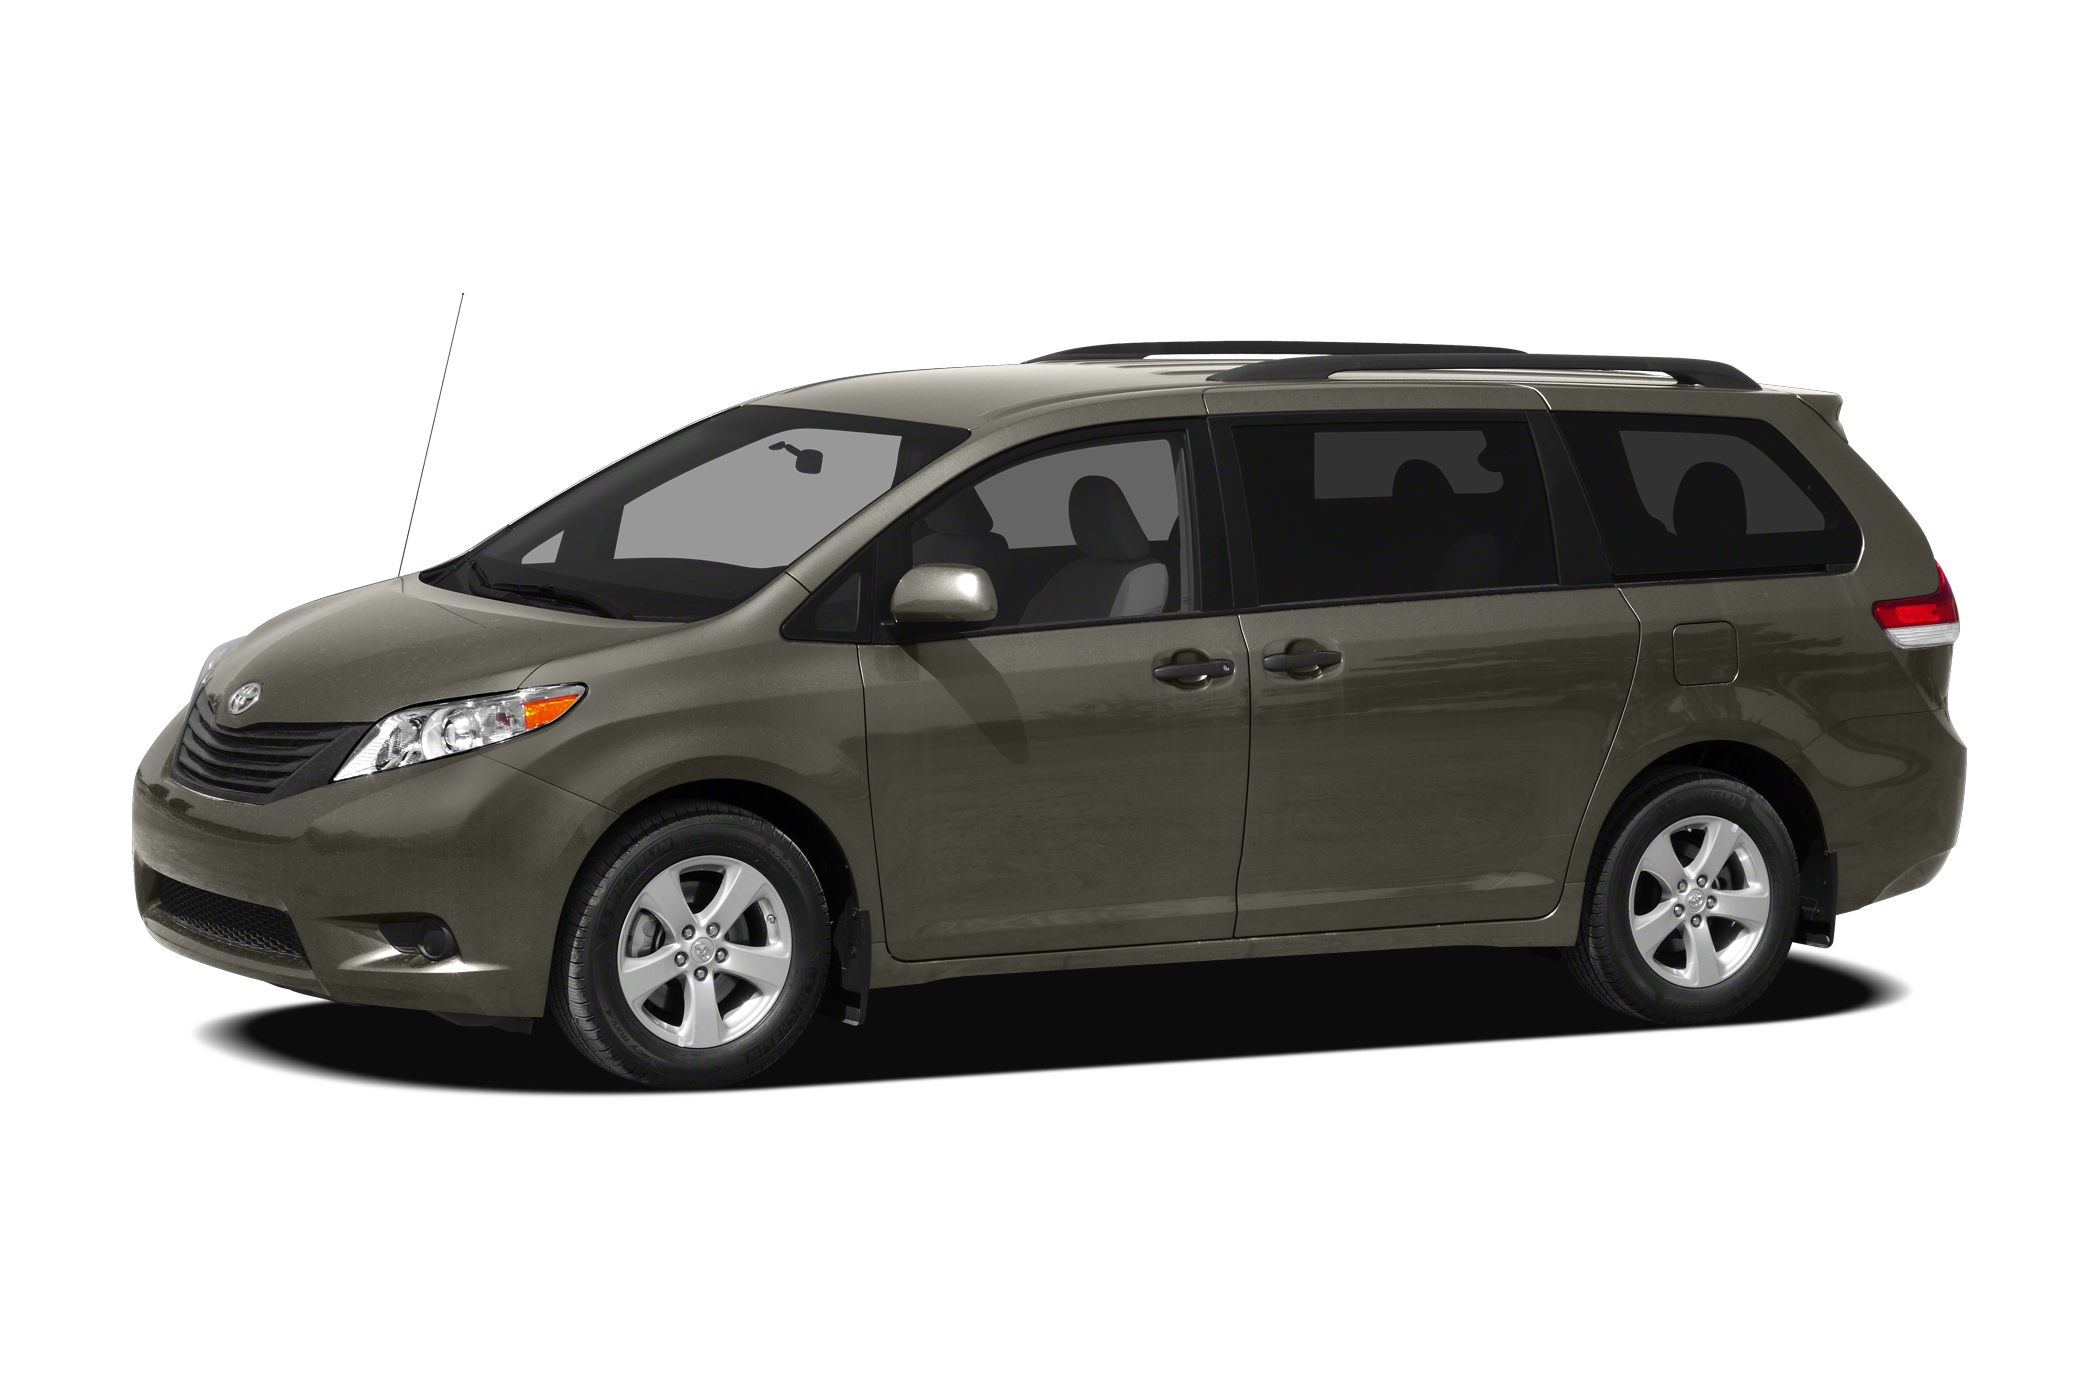 2012 Toyota Sienna Limited 7 Passenger PRICED TO MOVE 2400 below Kelley Blue Book Ltd trim Moo